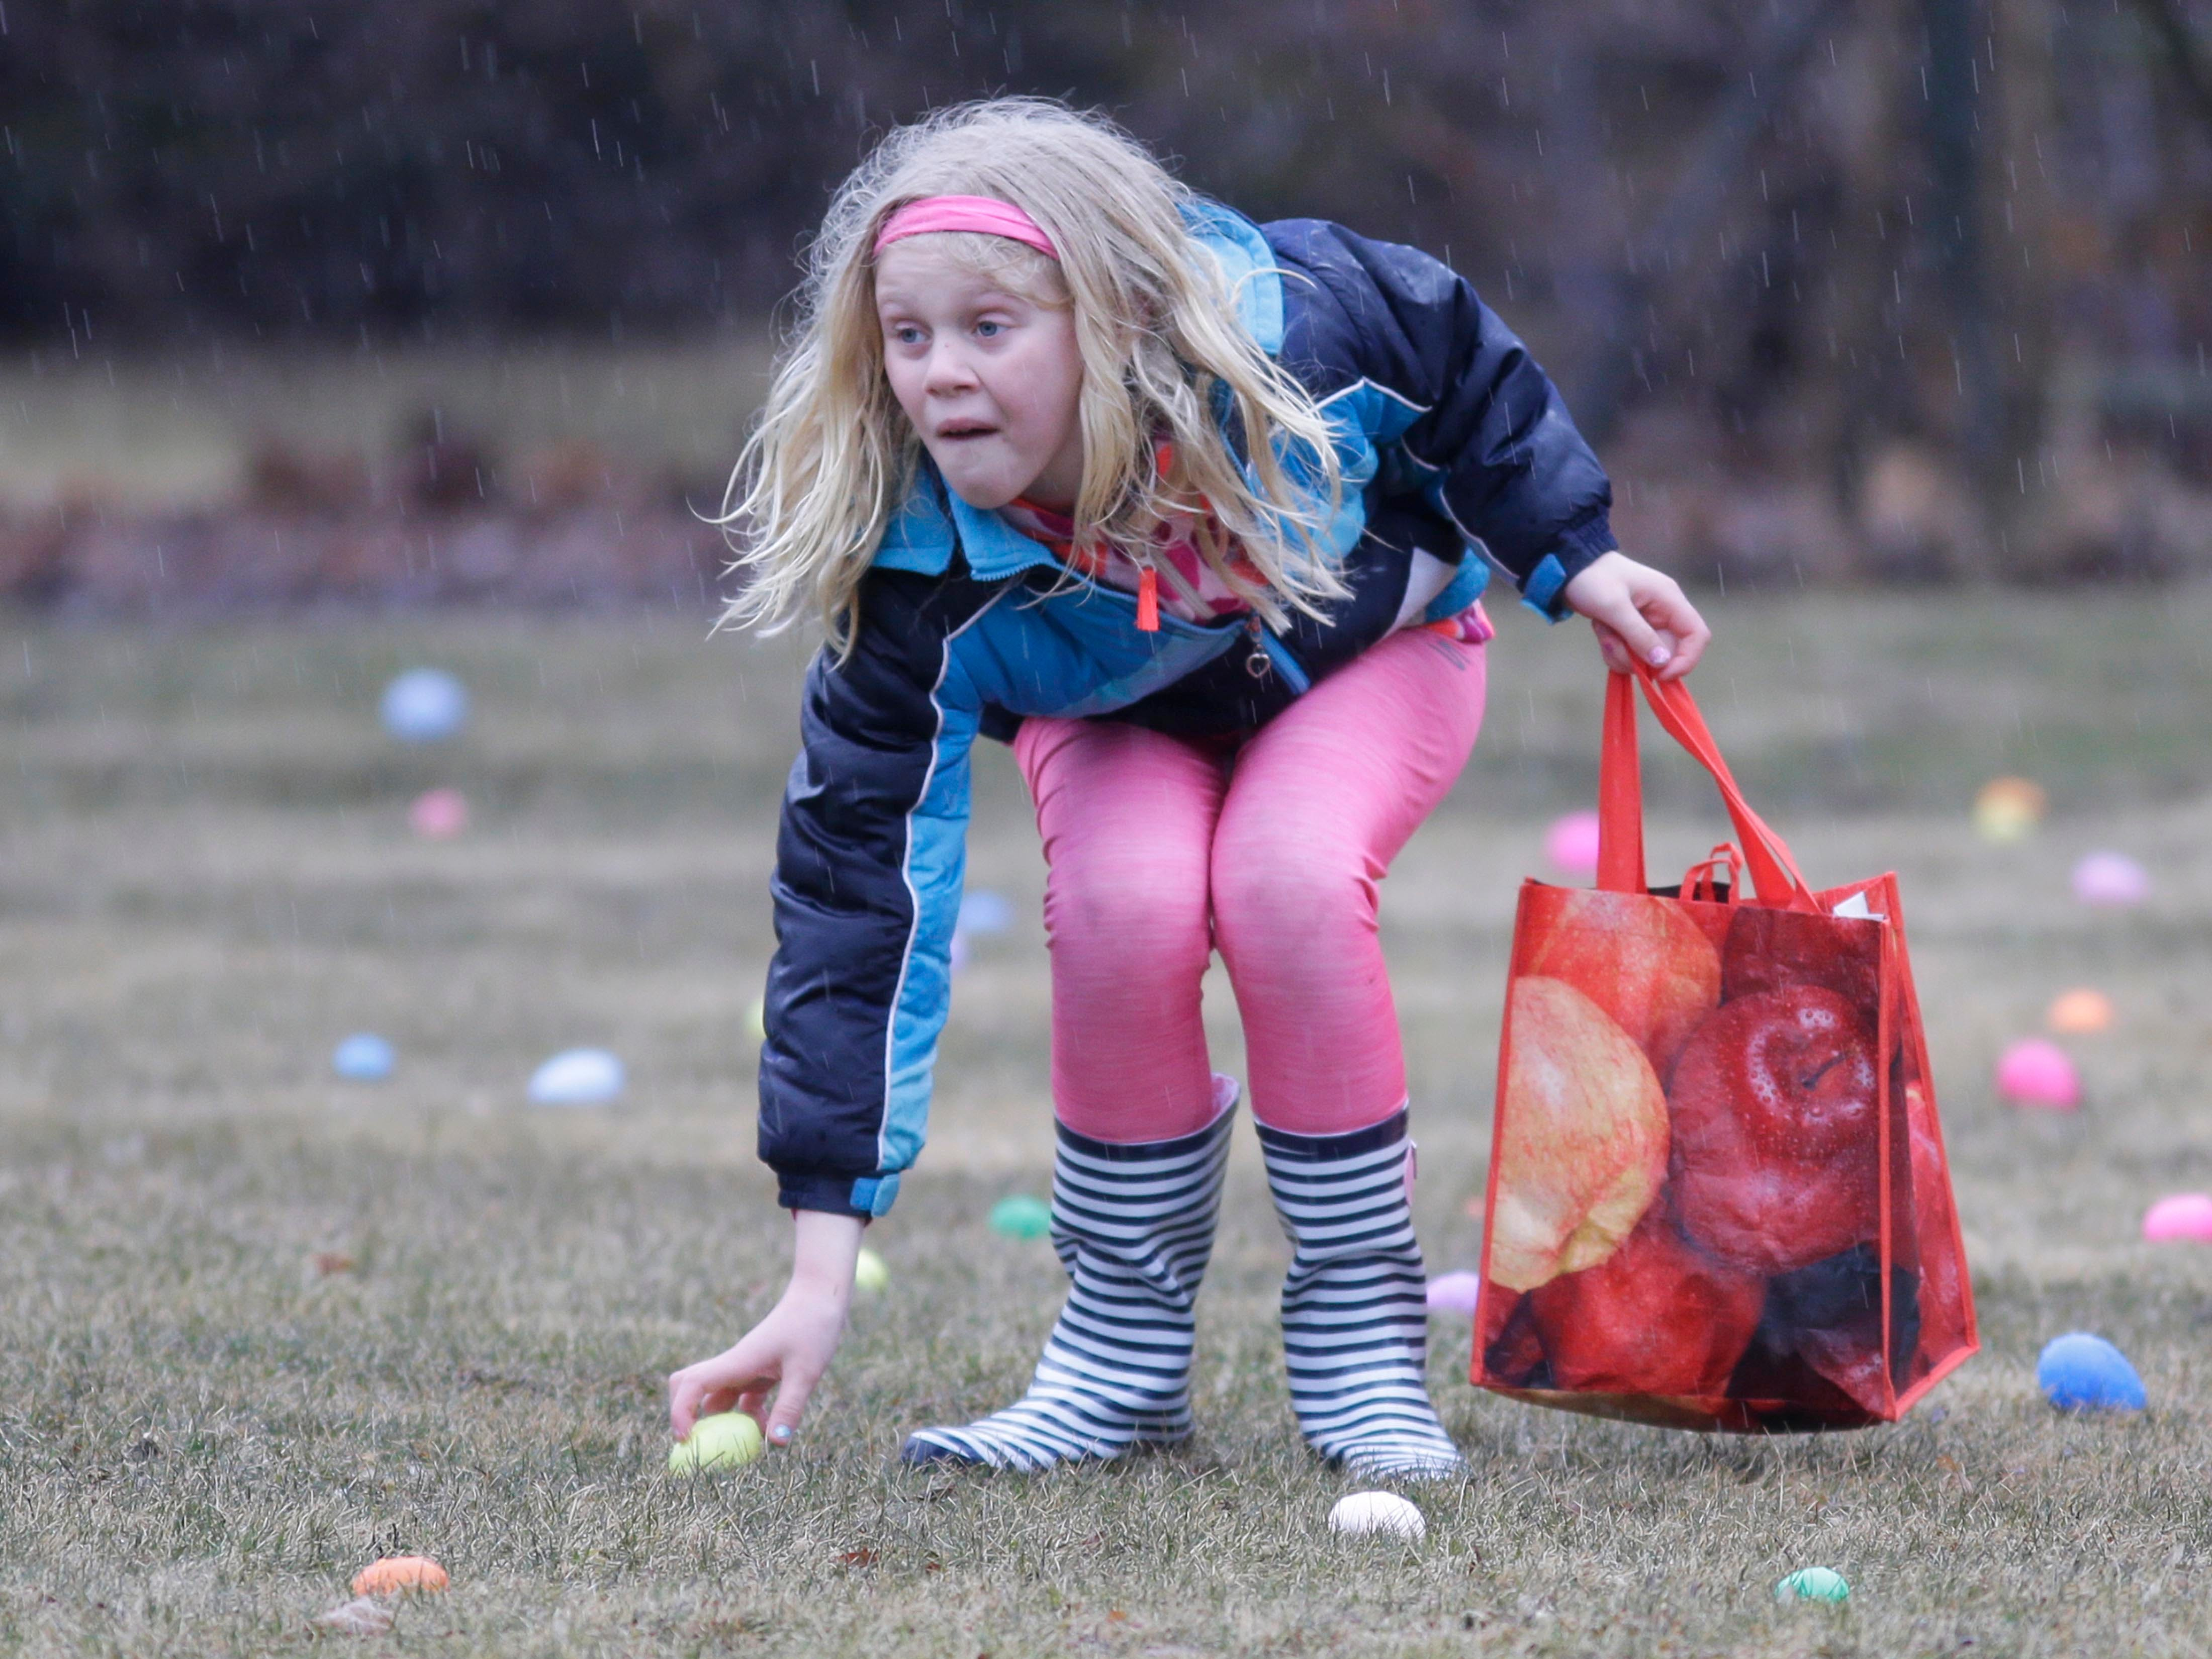 Fephra Martni, 7, picks up Easter Eggs at the Hocevar Family Easter Egg Hunt, Saturday, March 31, 2018, in Sheboygan Falls, Wis.